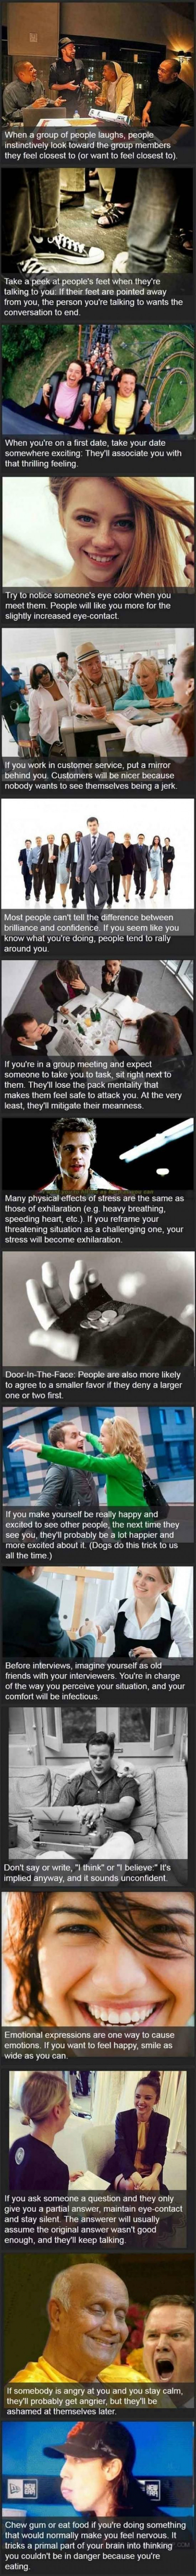 Psychological Tricks You Can Use On People Right Now